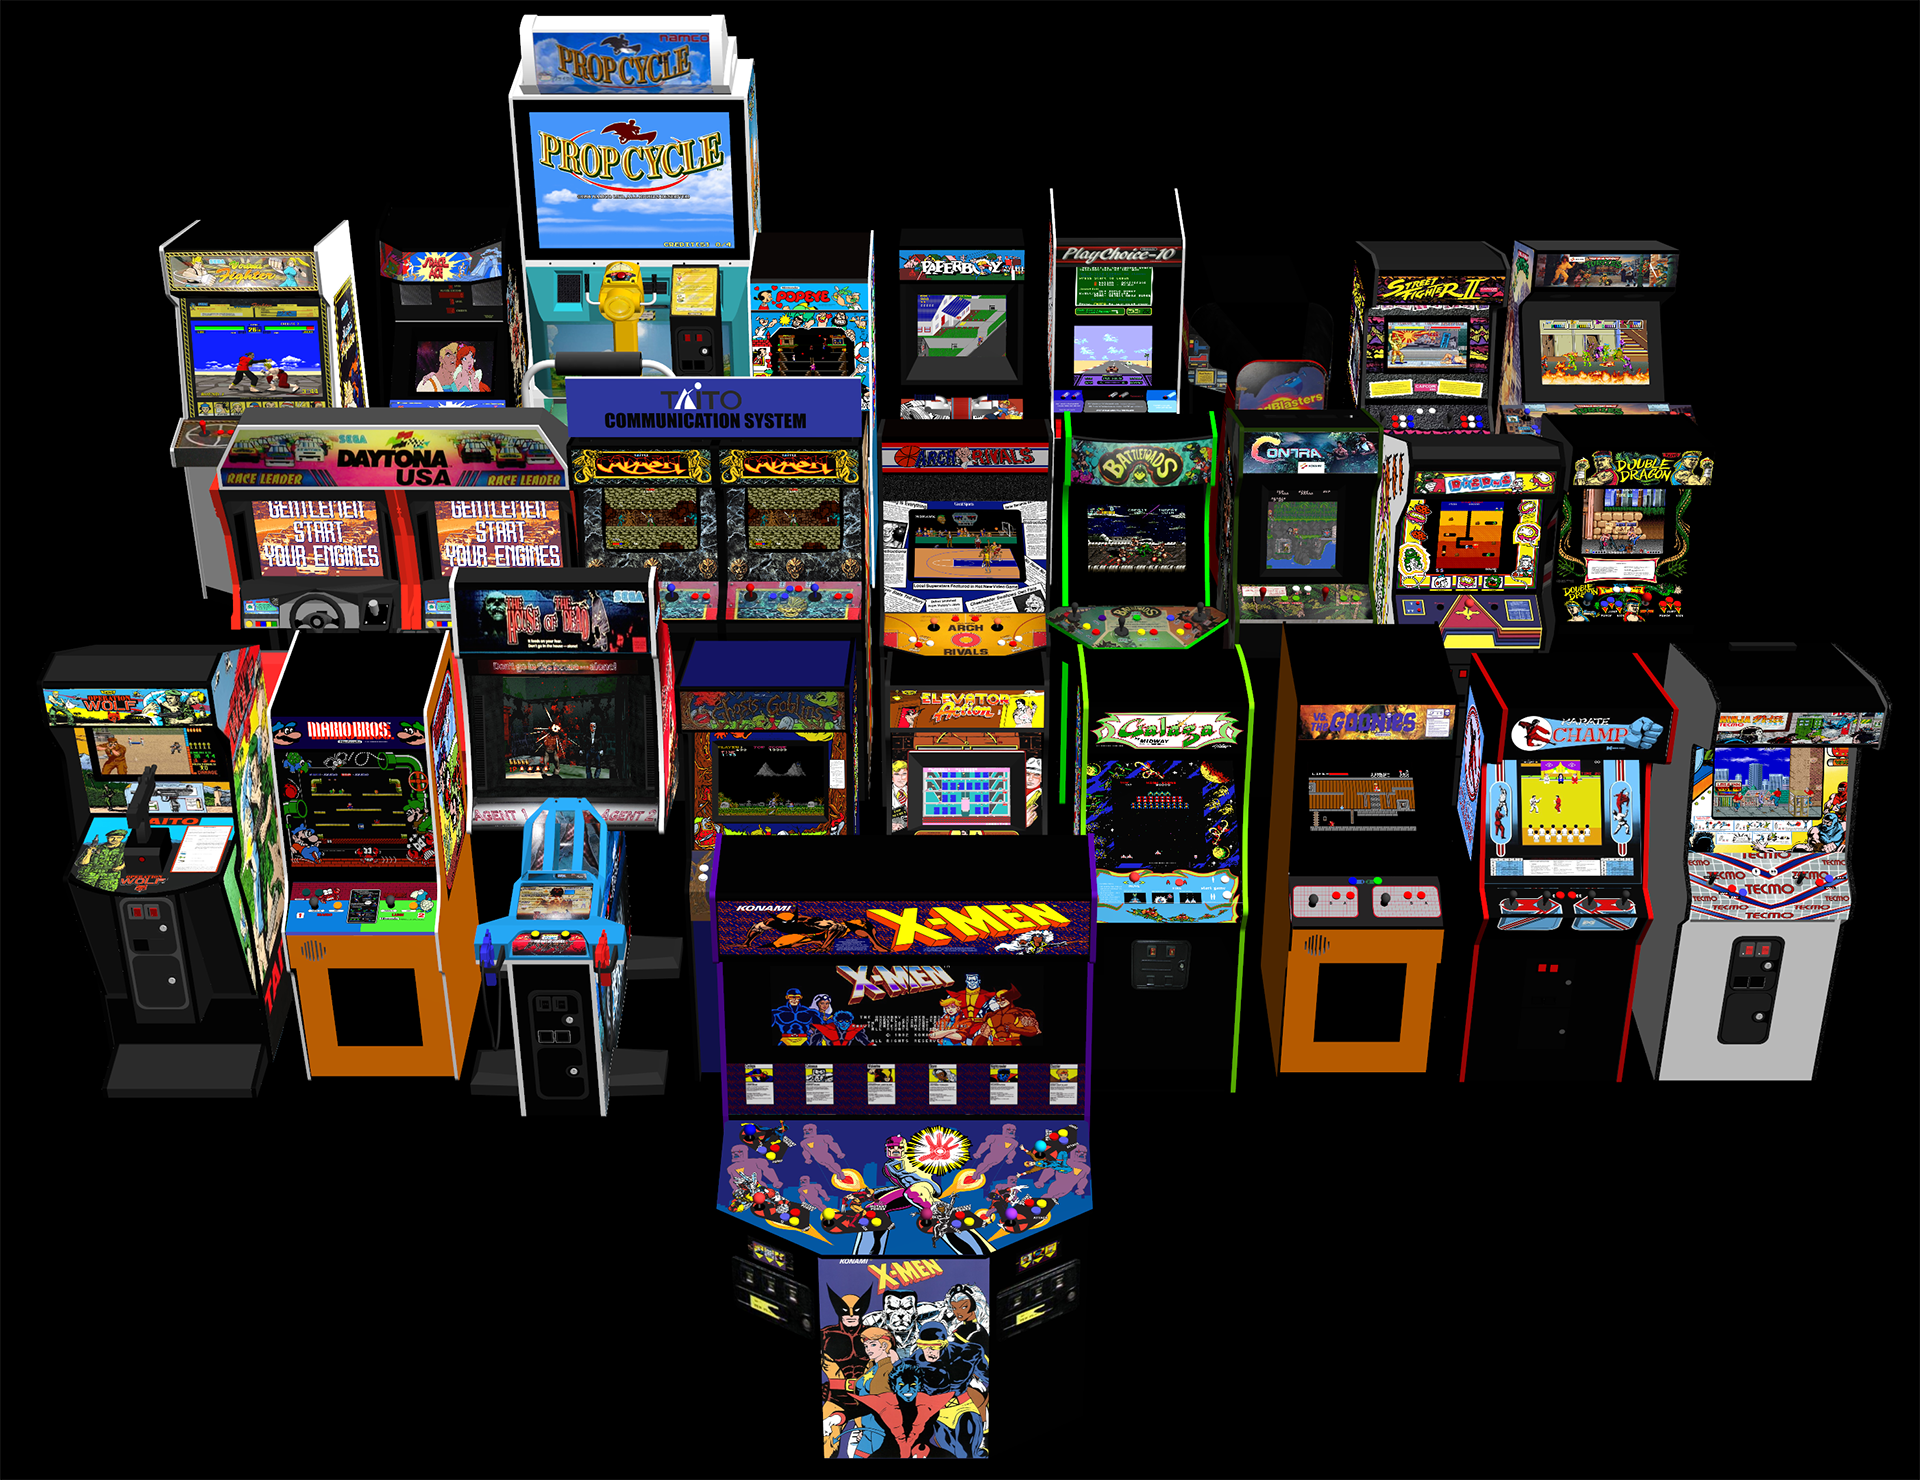 Arcade Game Wallpaper Group With 57 Items: [MMD] Arcade Cabinets DL By MrWhitefolks On DeviantArt